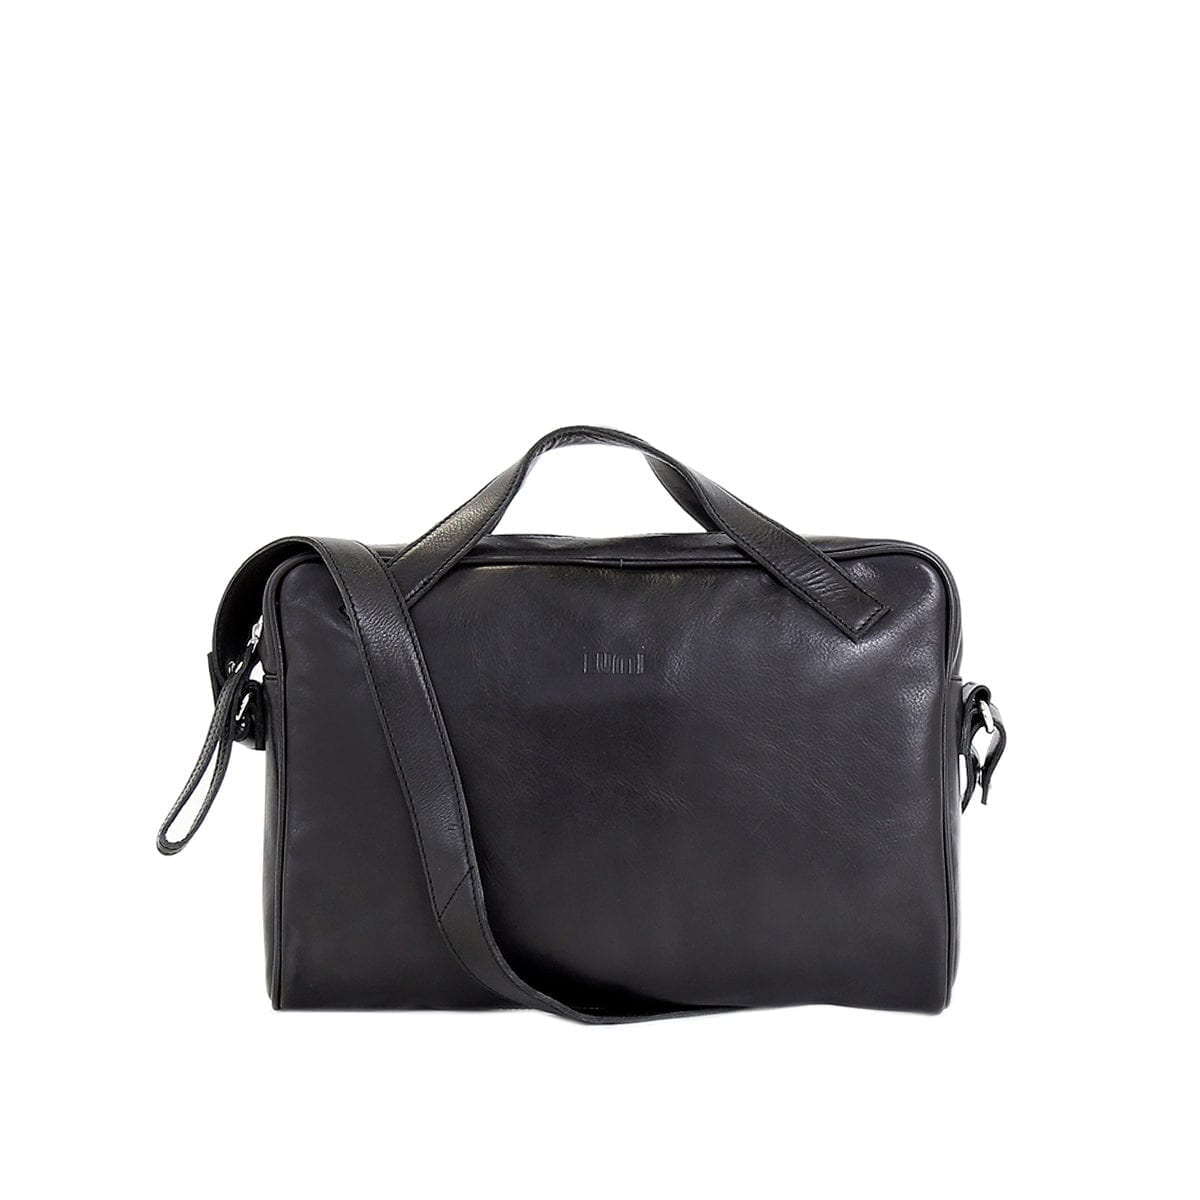 LUMI Hilma Solid Laptop Bag in classic black. This functional and stylish bag ticks all the boxes for a business bag - for men and women. Hilma fits a 13″ laptop and the light padding keeps it safe.